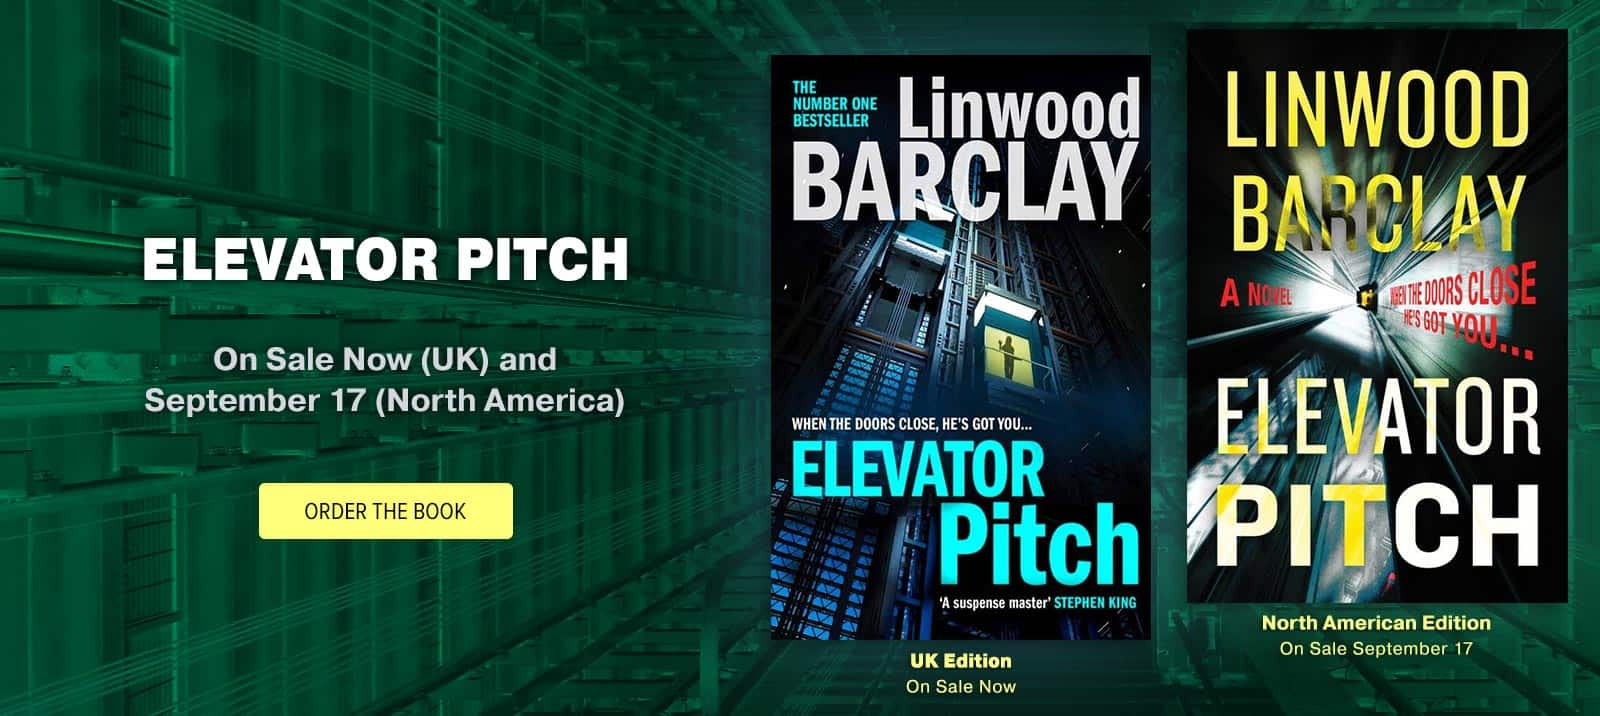 'Elevator Pitch' by Linwood Barclay